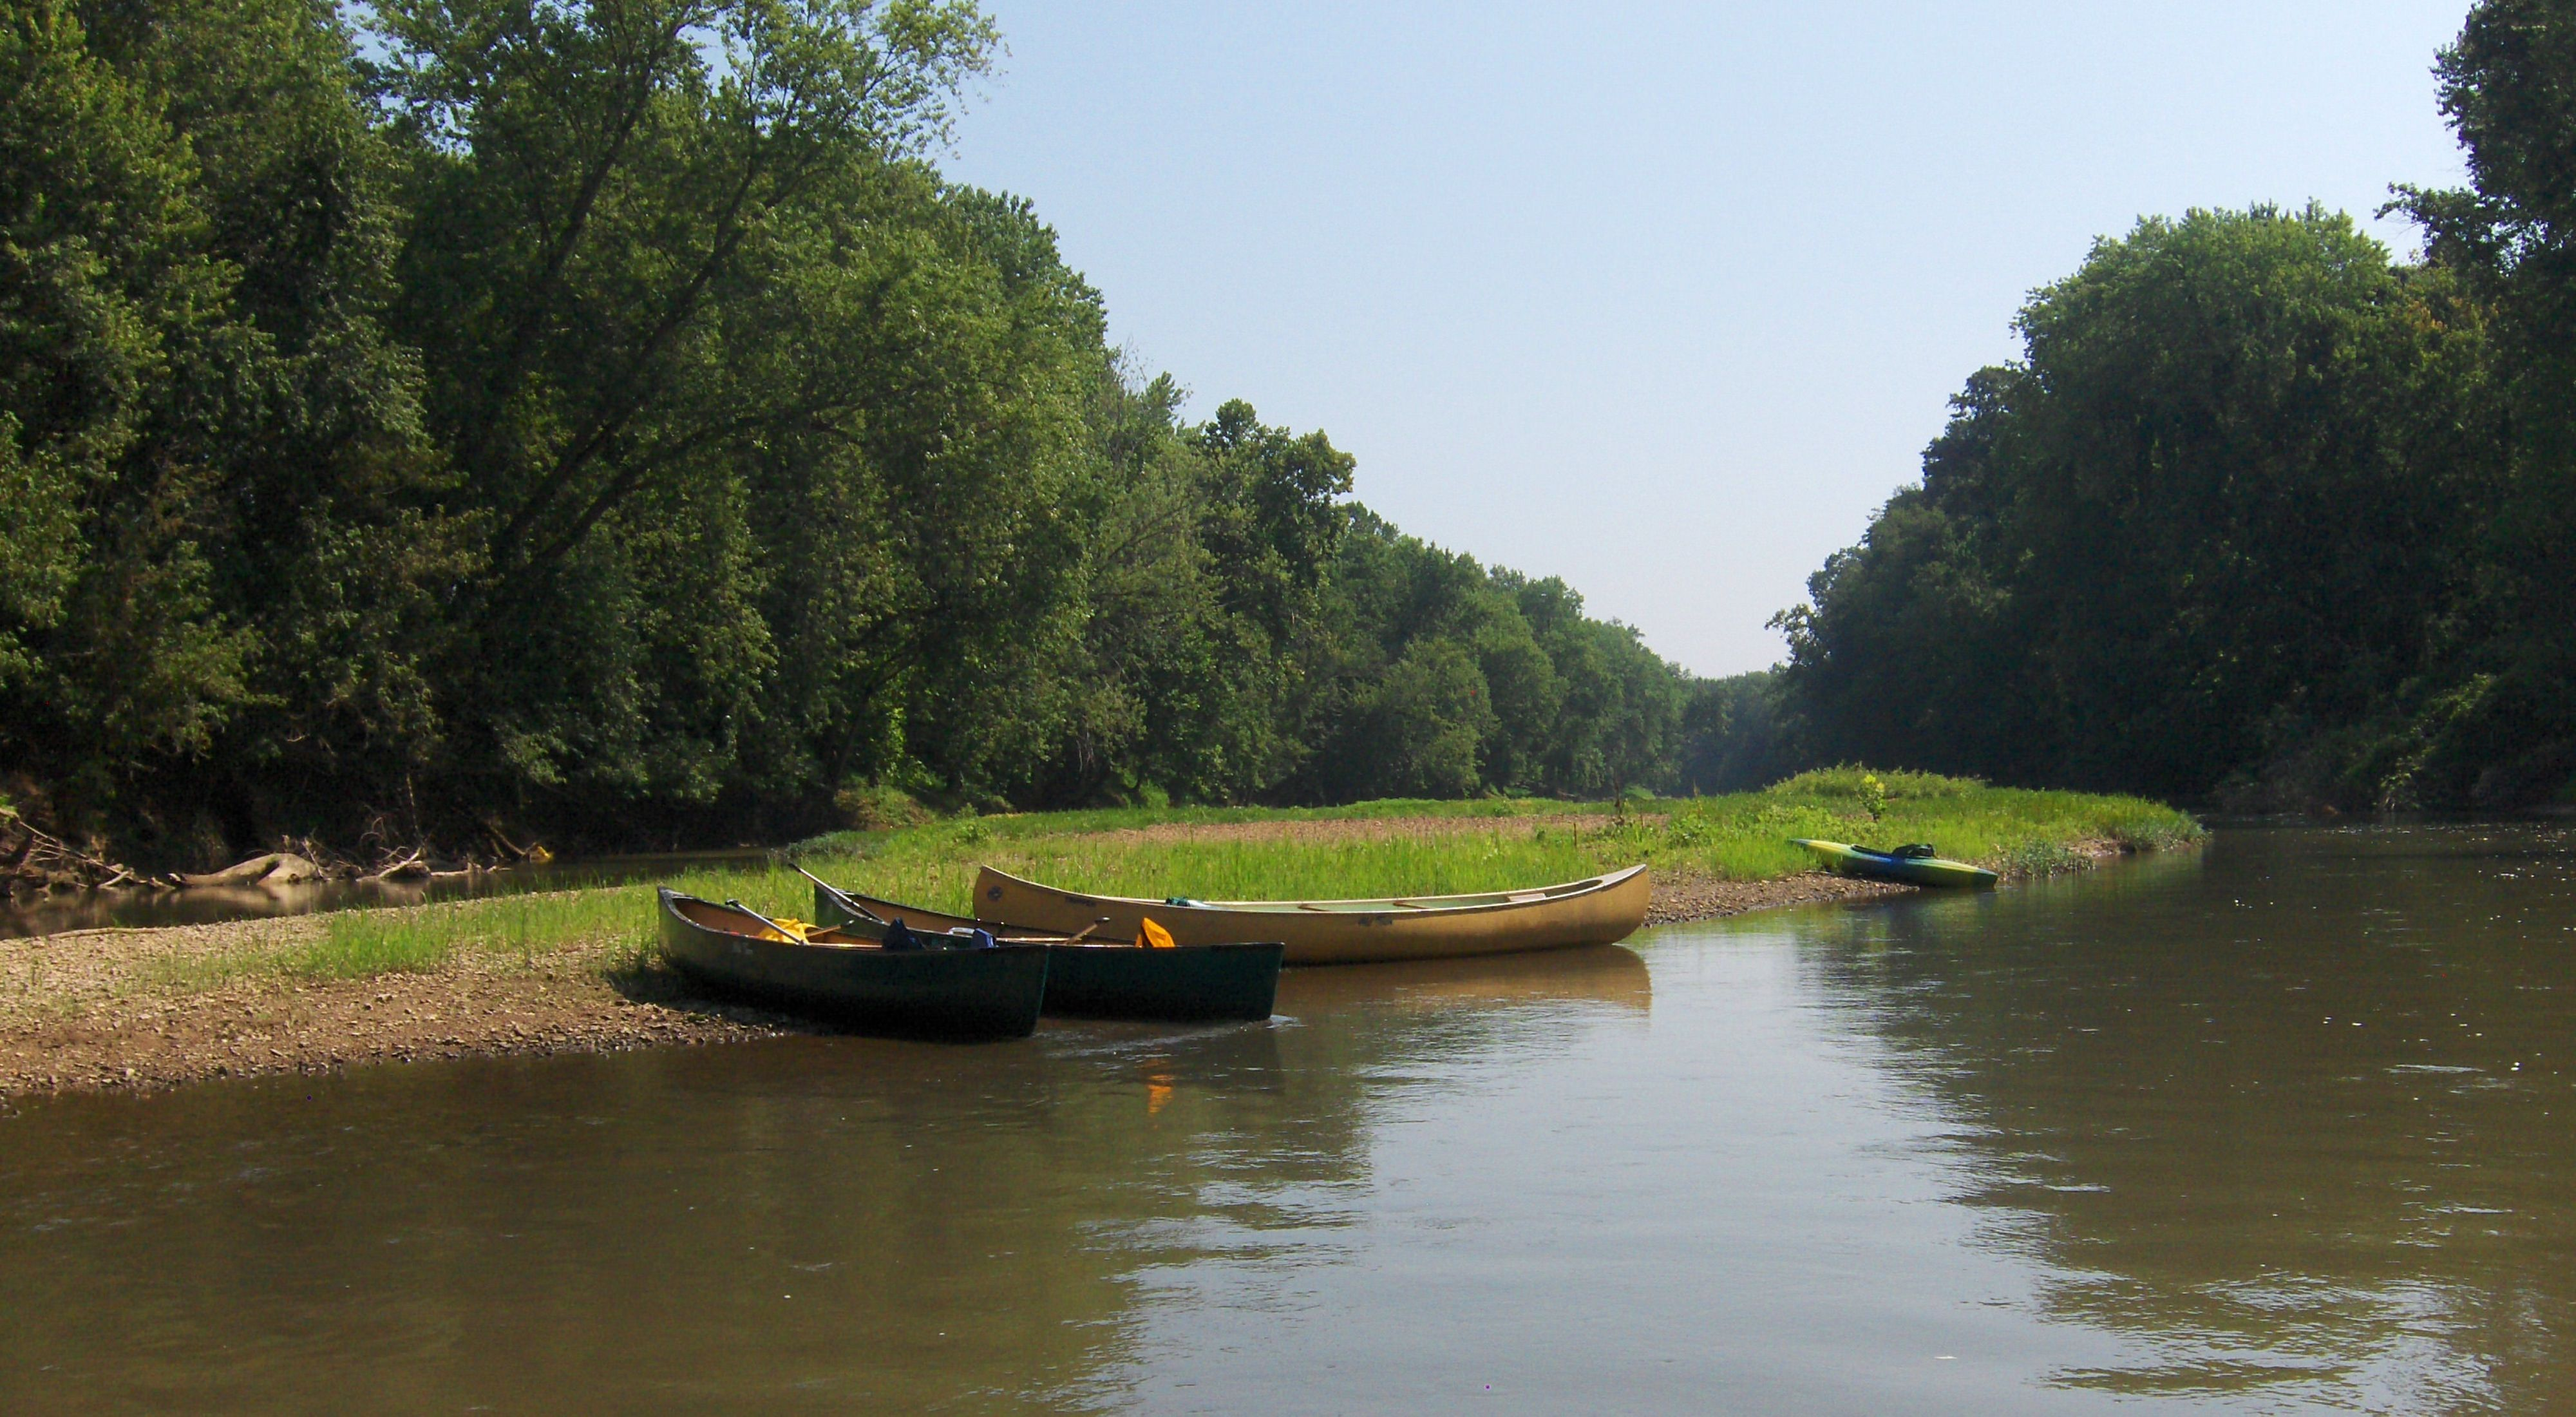 Three canoes and a kayak sit on the side of a river bank.